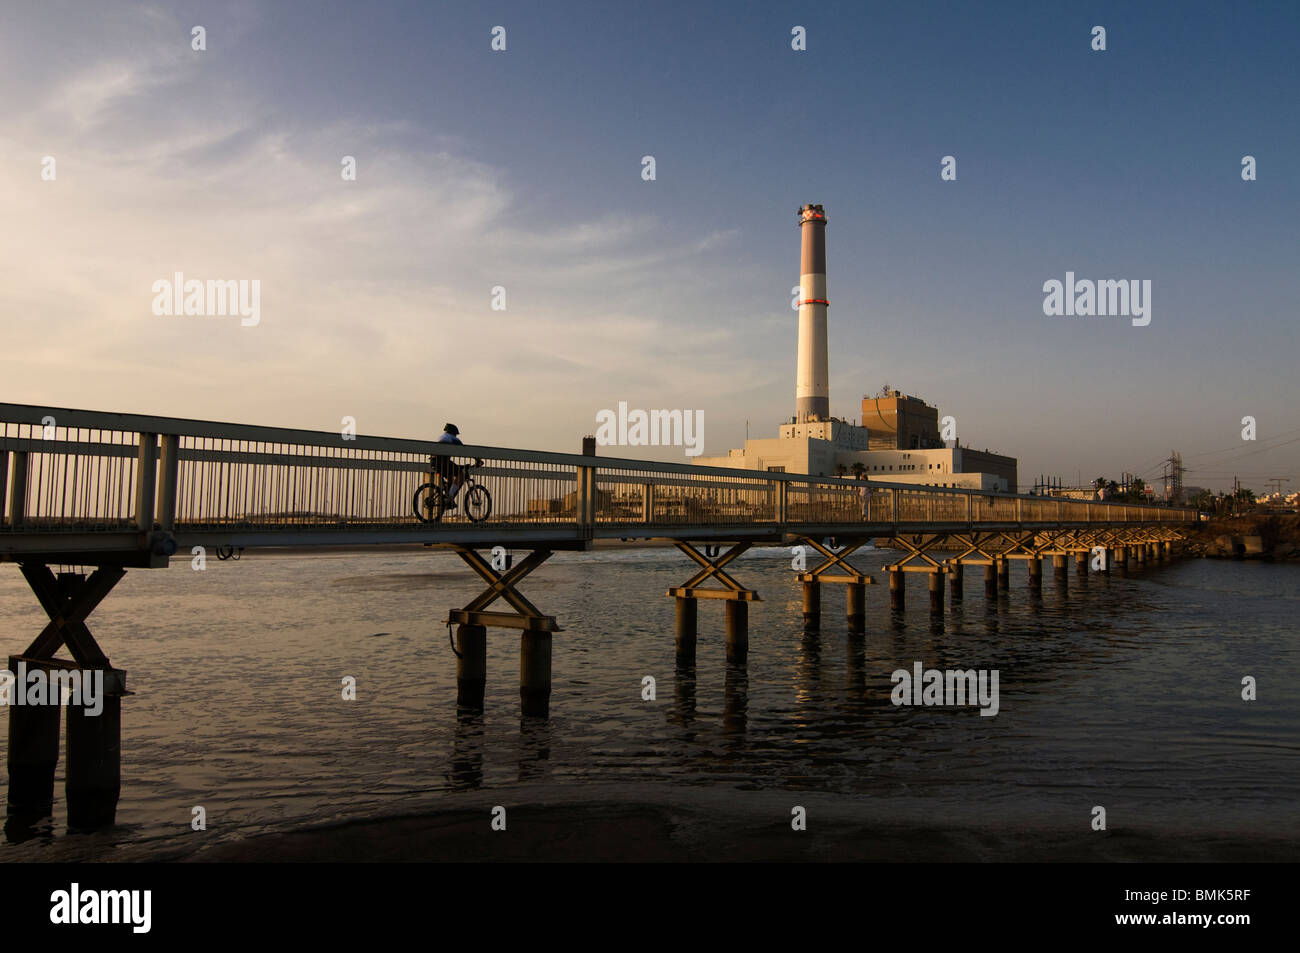 Bicycler crossing a bridge over the Yarkon or Yarqon river near Reading power station supplying electrical power - Stock Image